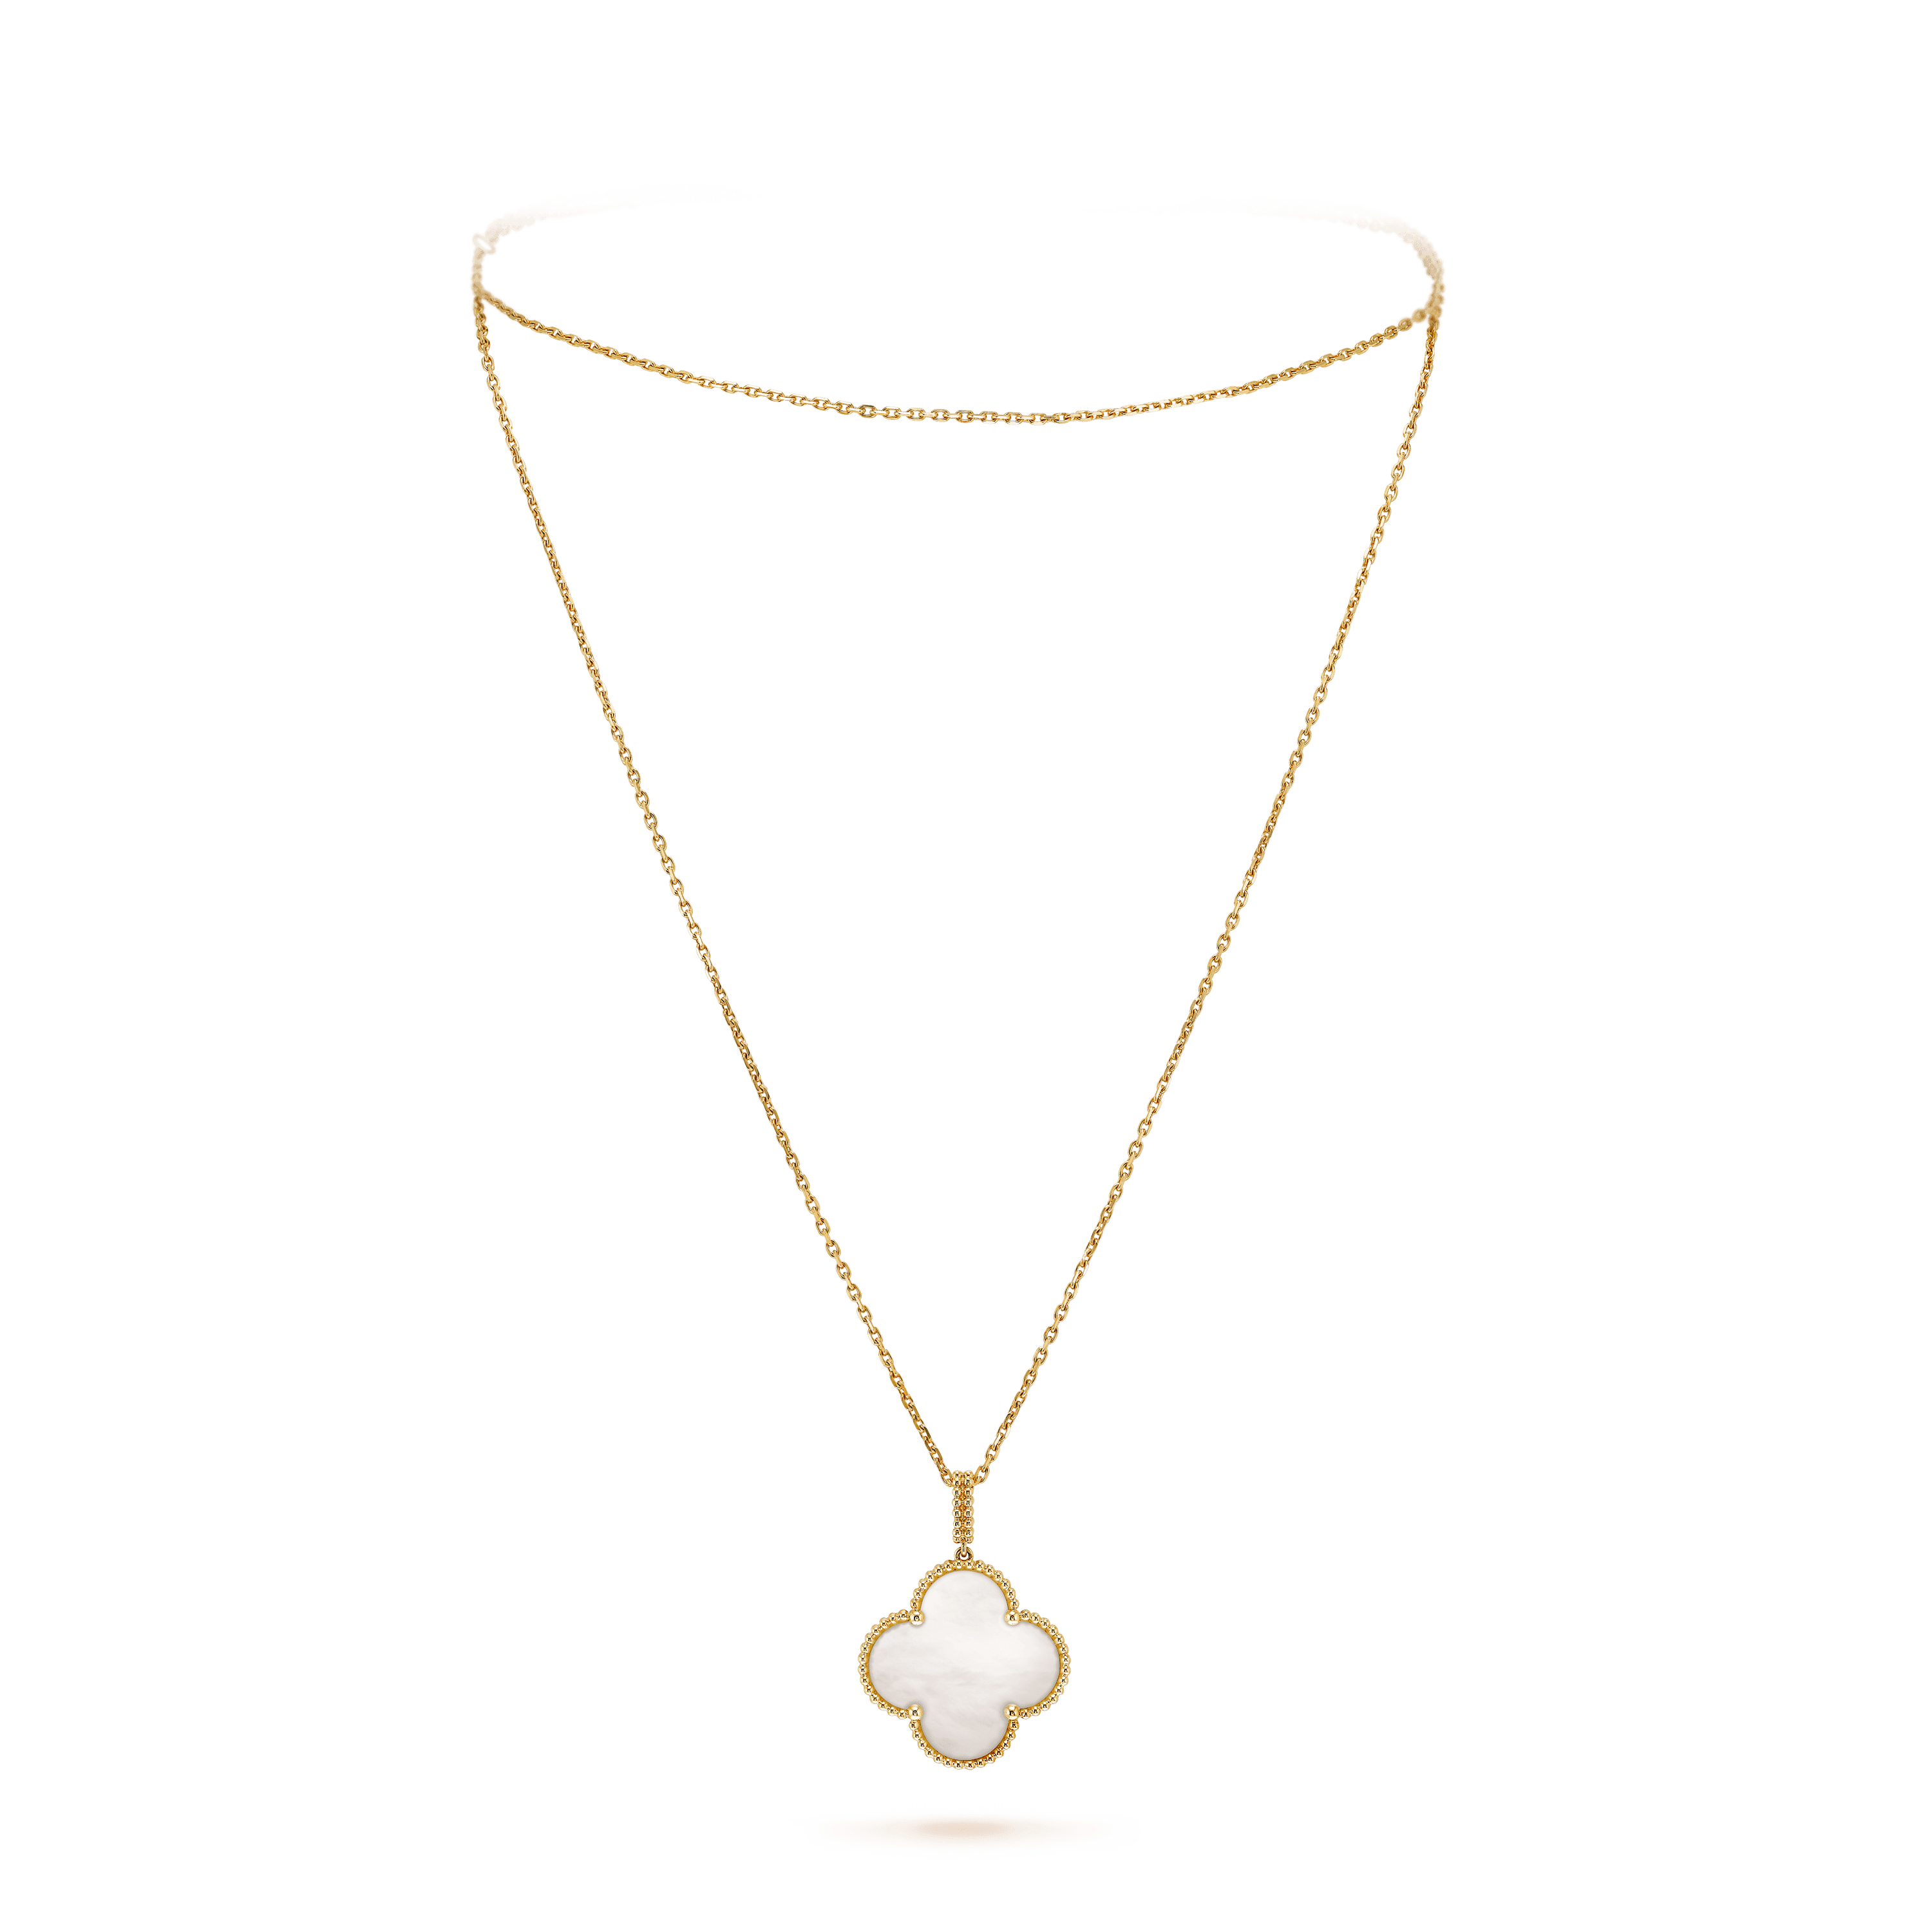 Magic Alhambra long necklace, 1 motif, - On Stand View - VCARO49L00 - Van Cleef & Arpels